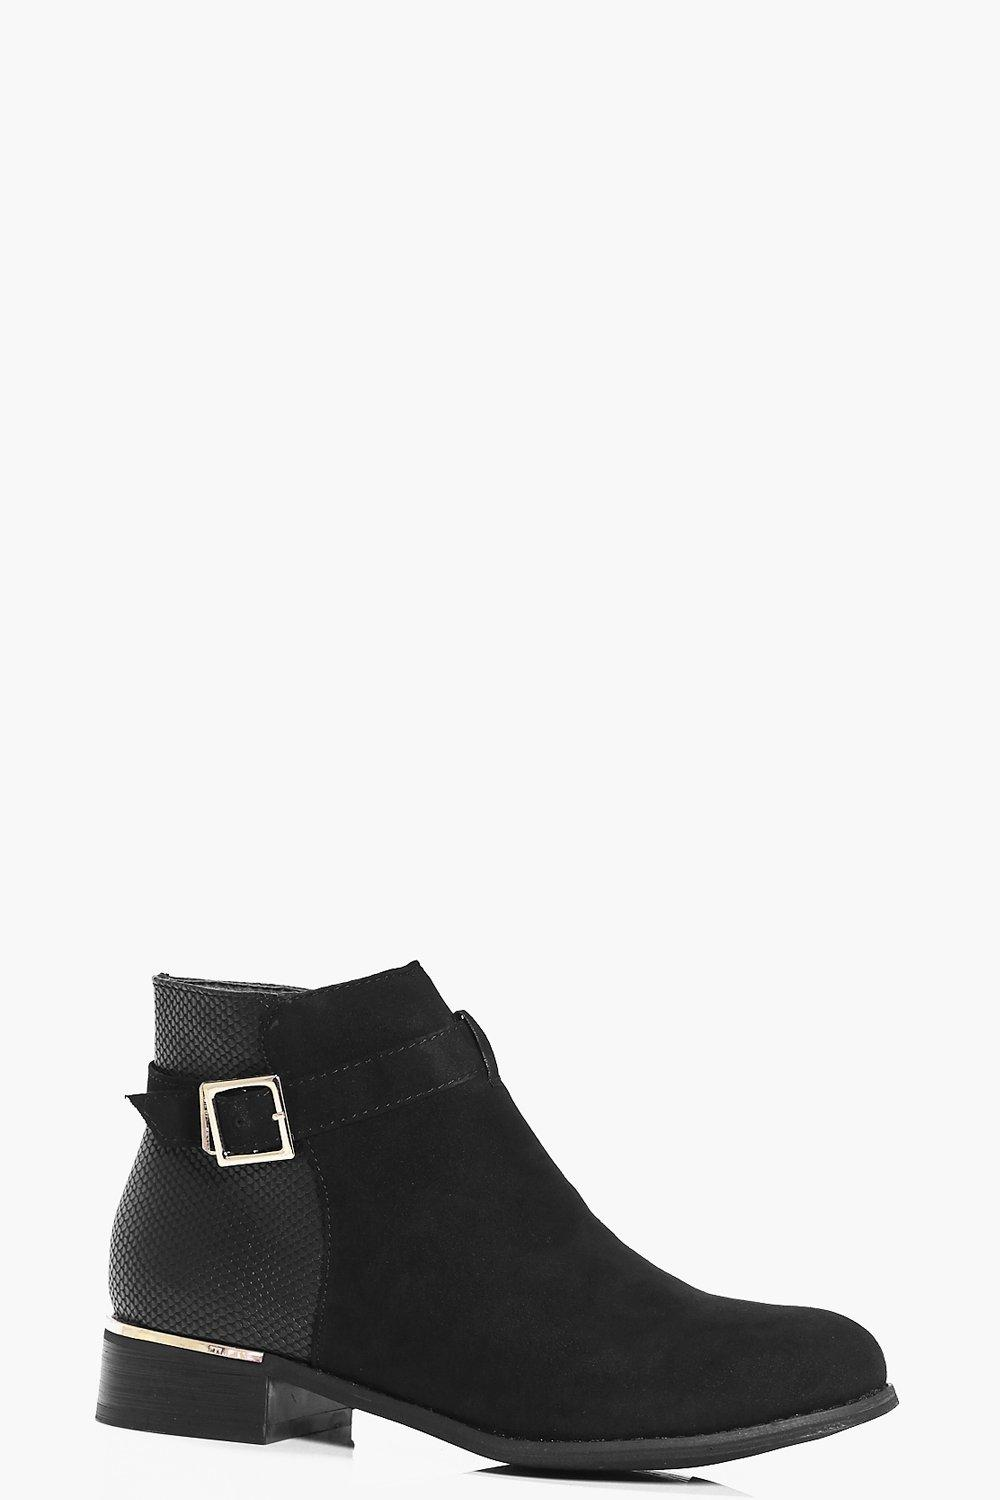 Edie Metallic Buckle Trim Chelsea Boot